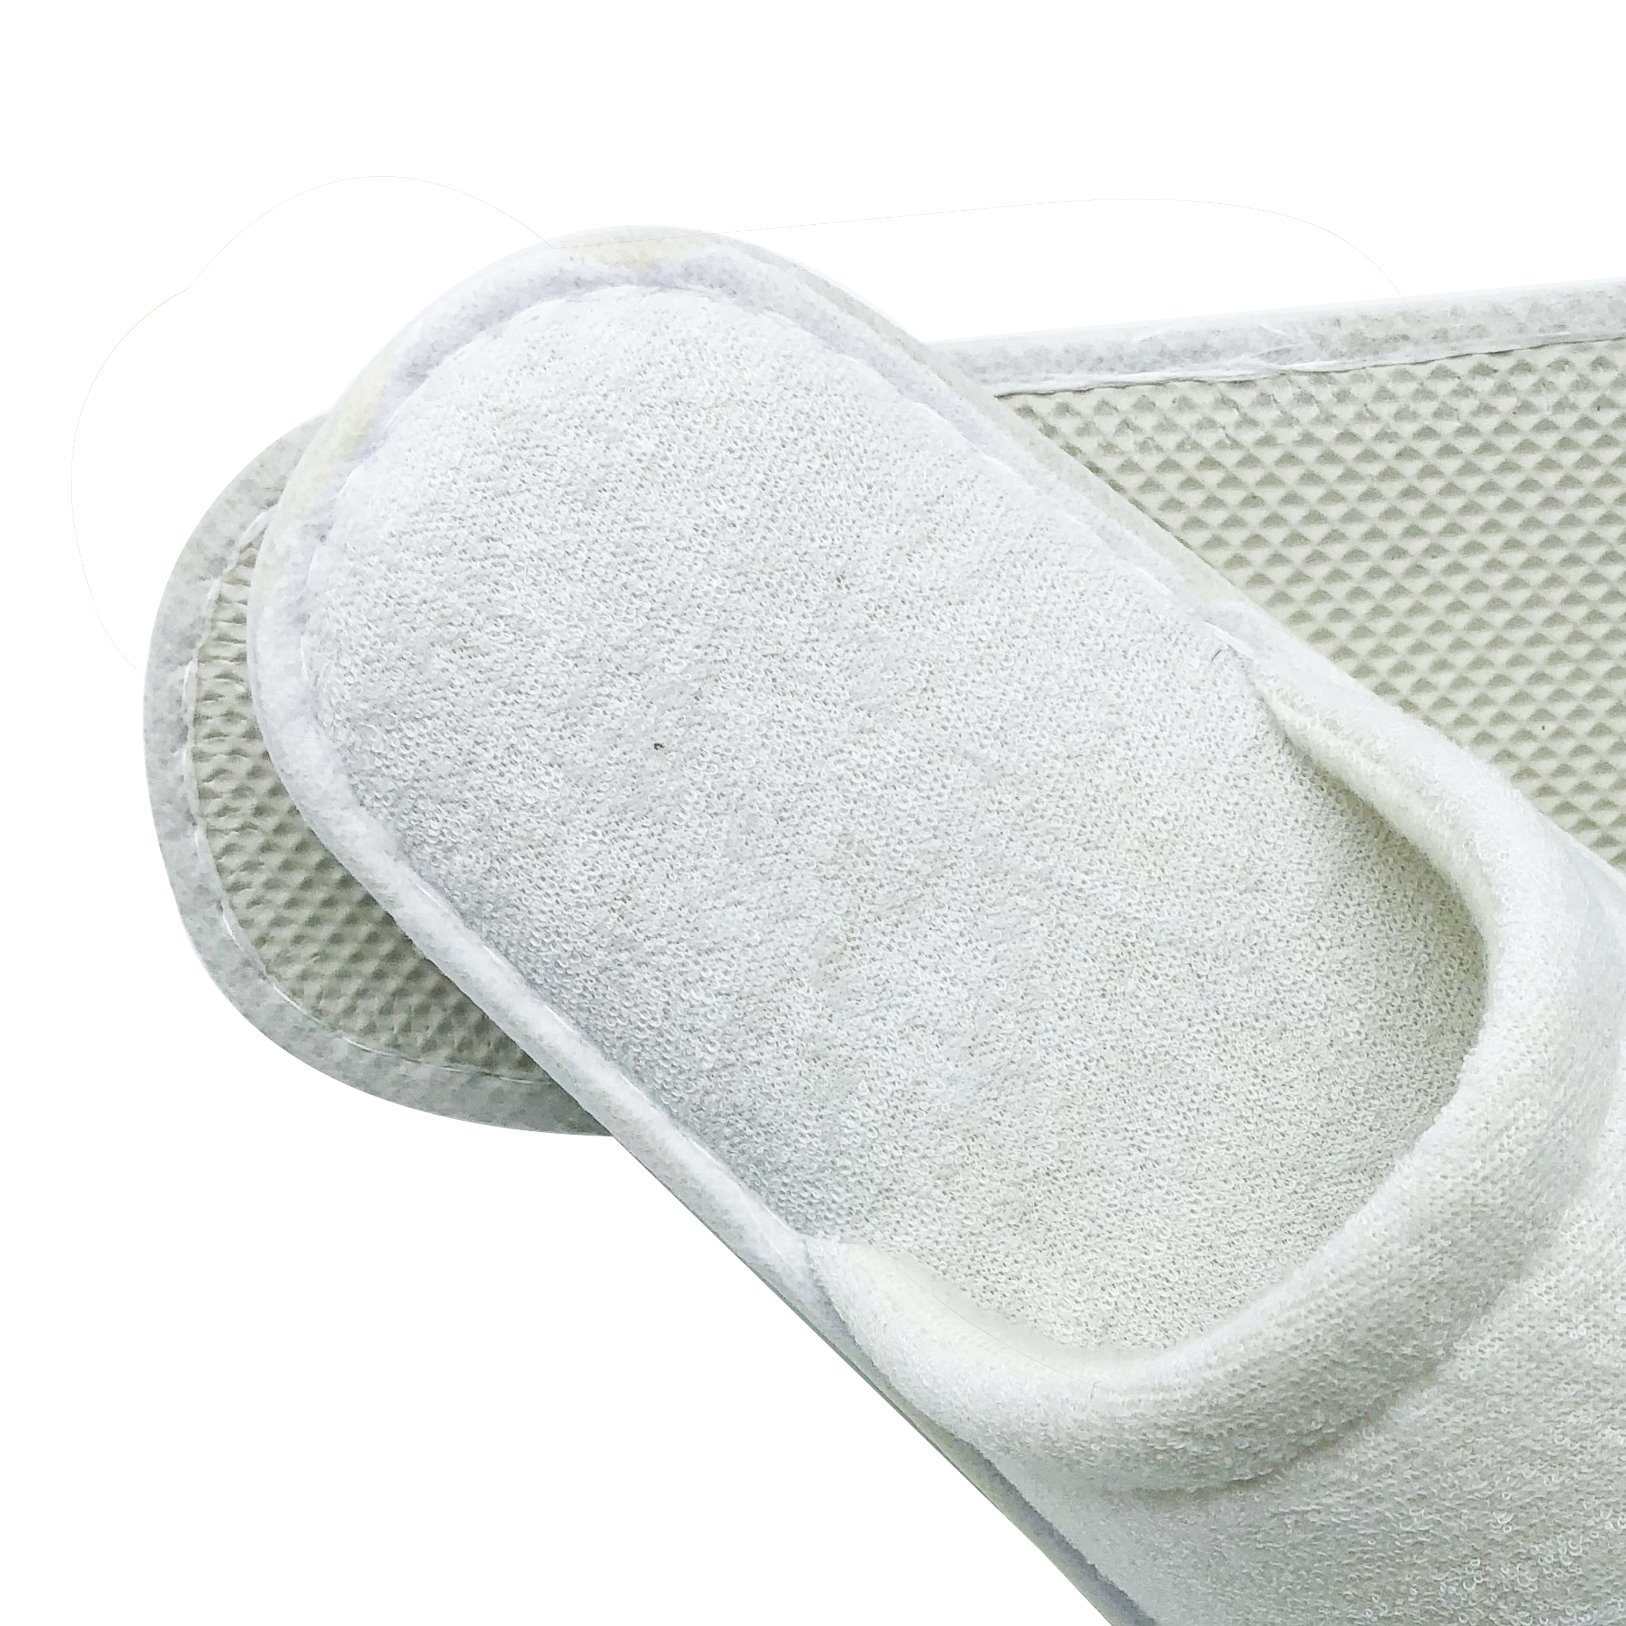 Hotel Amenities Slippers Hotel Products Manufacturer OEM SL013 pictures & photos